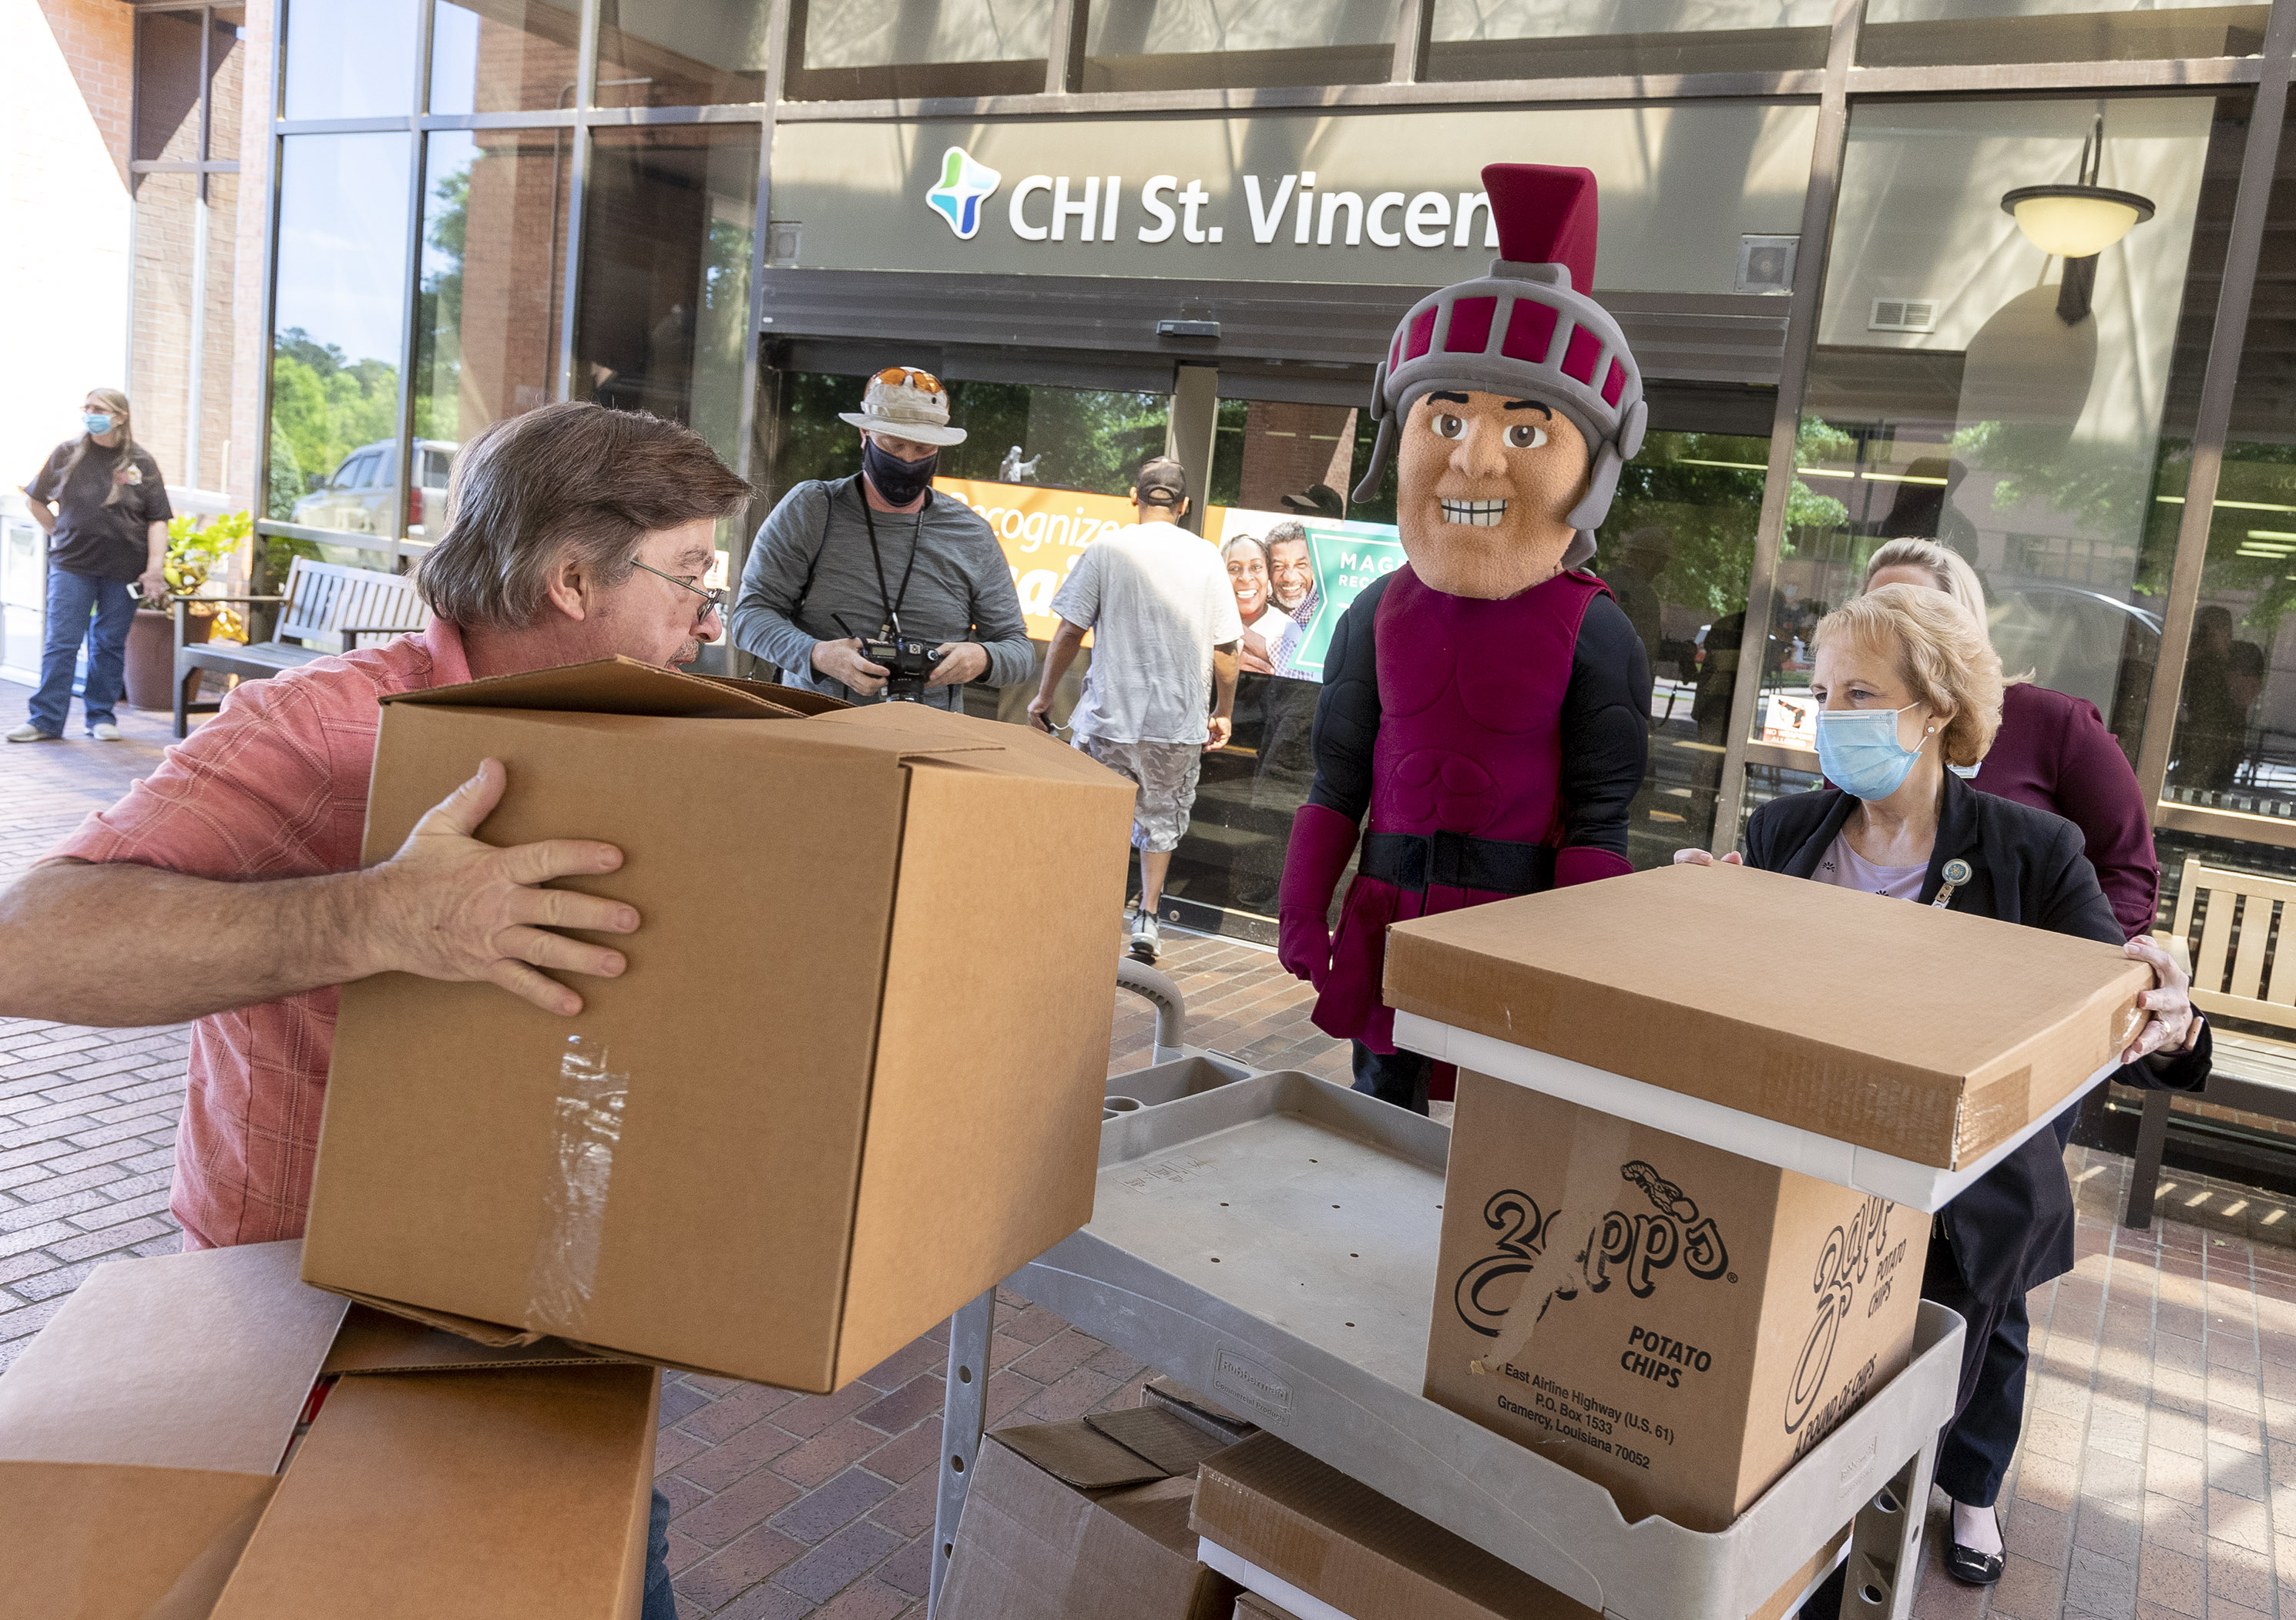 Maximus, the UA Little Rock mascot, delivers food and protective masks to CHI St. Vincent Hospital in support of health care workers for National Nurse Appreciation Day.